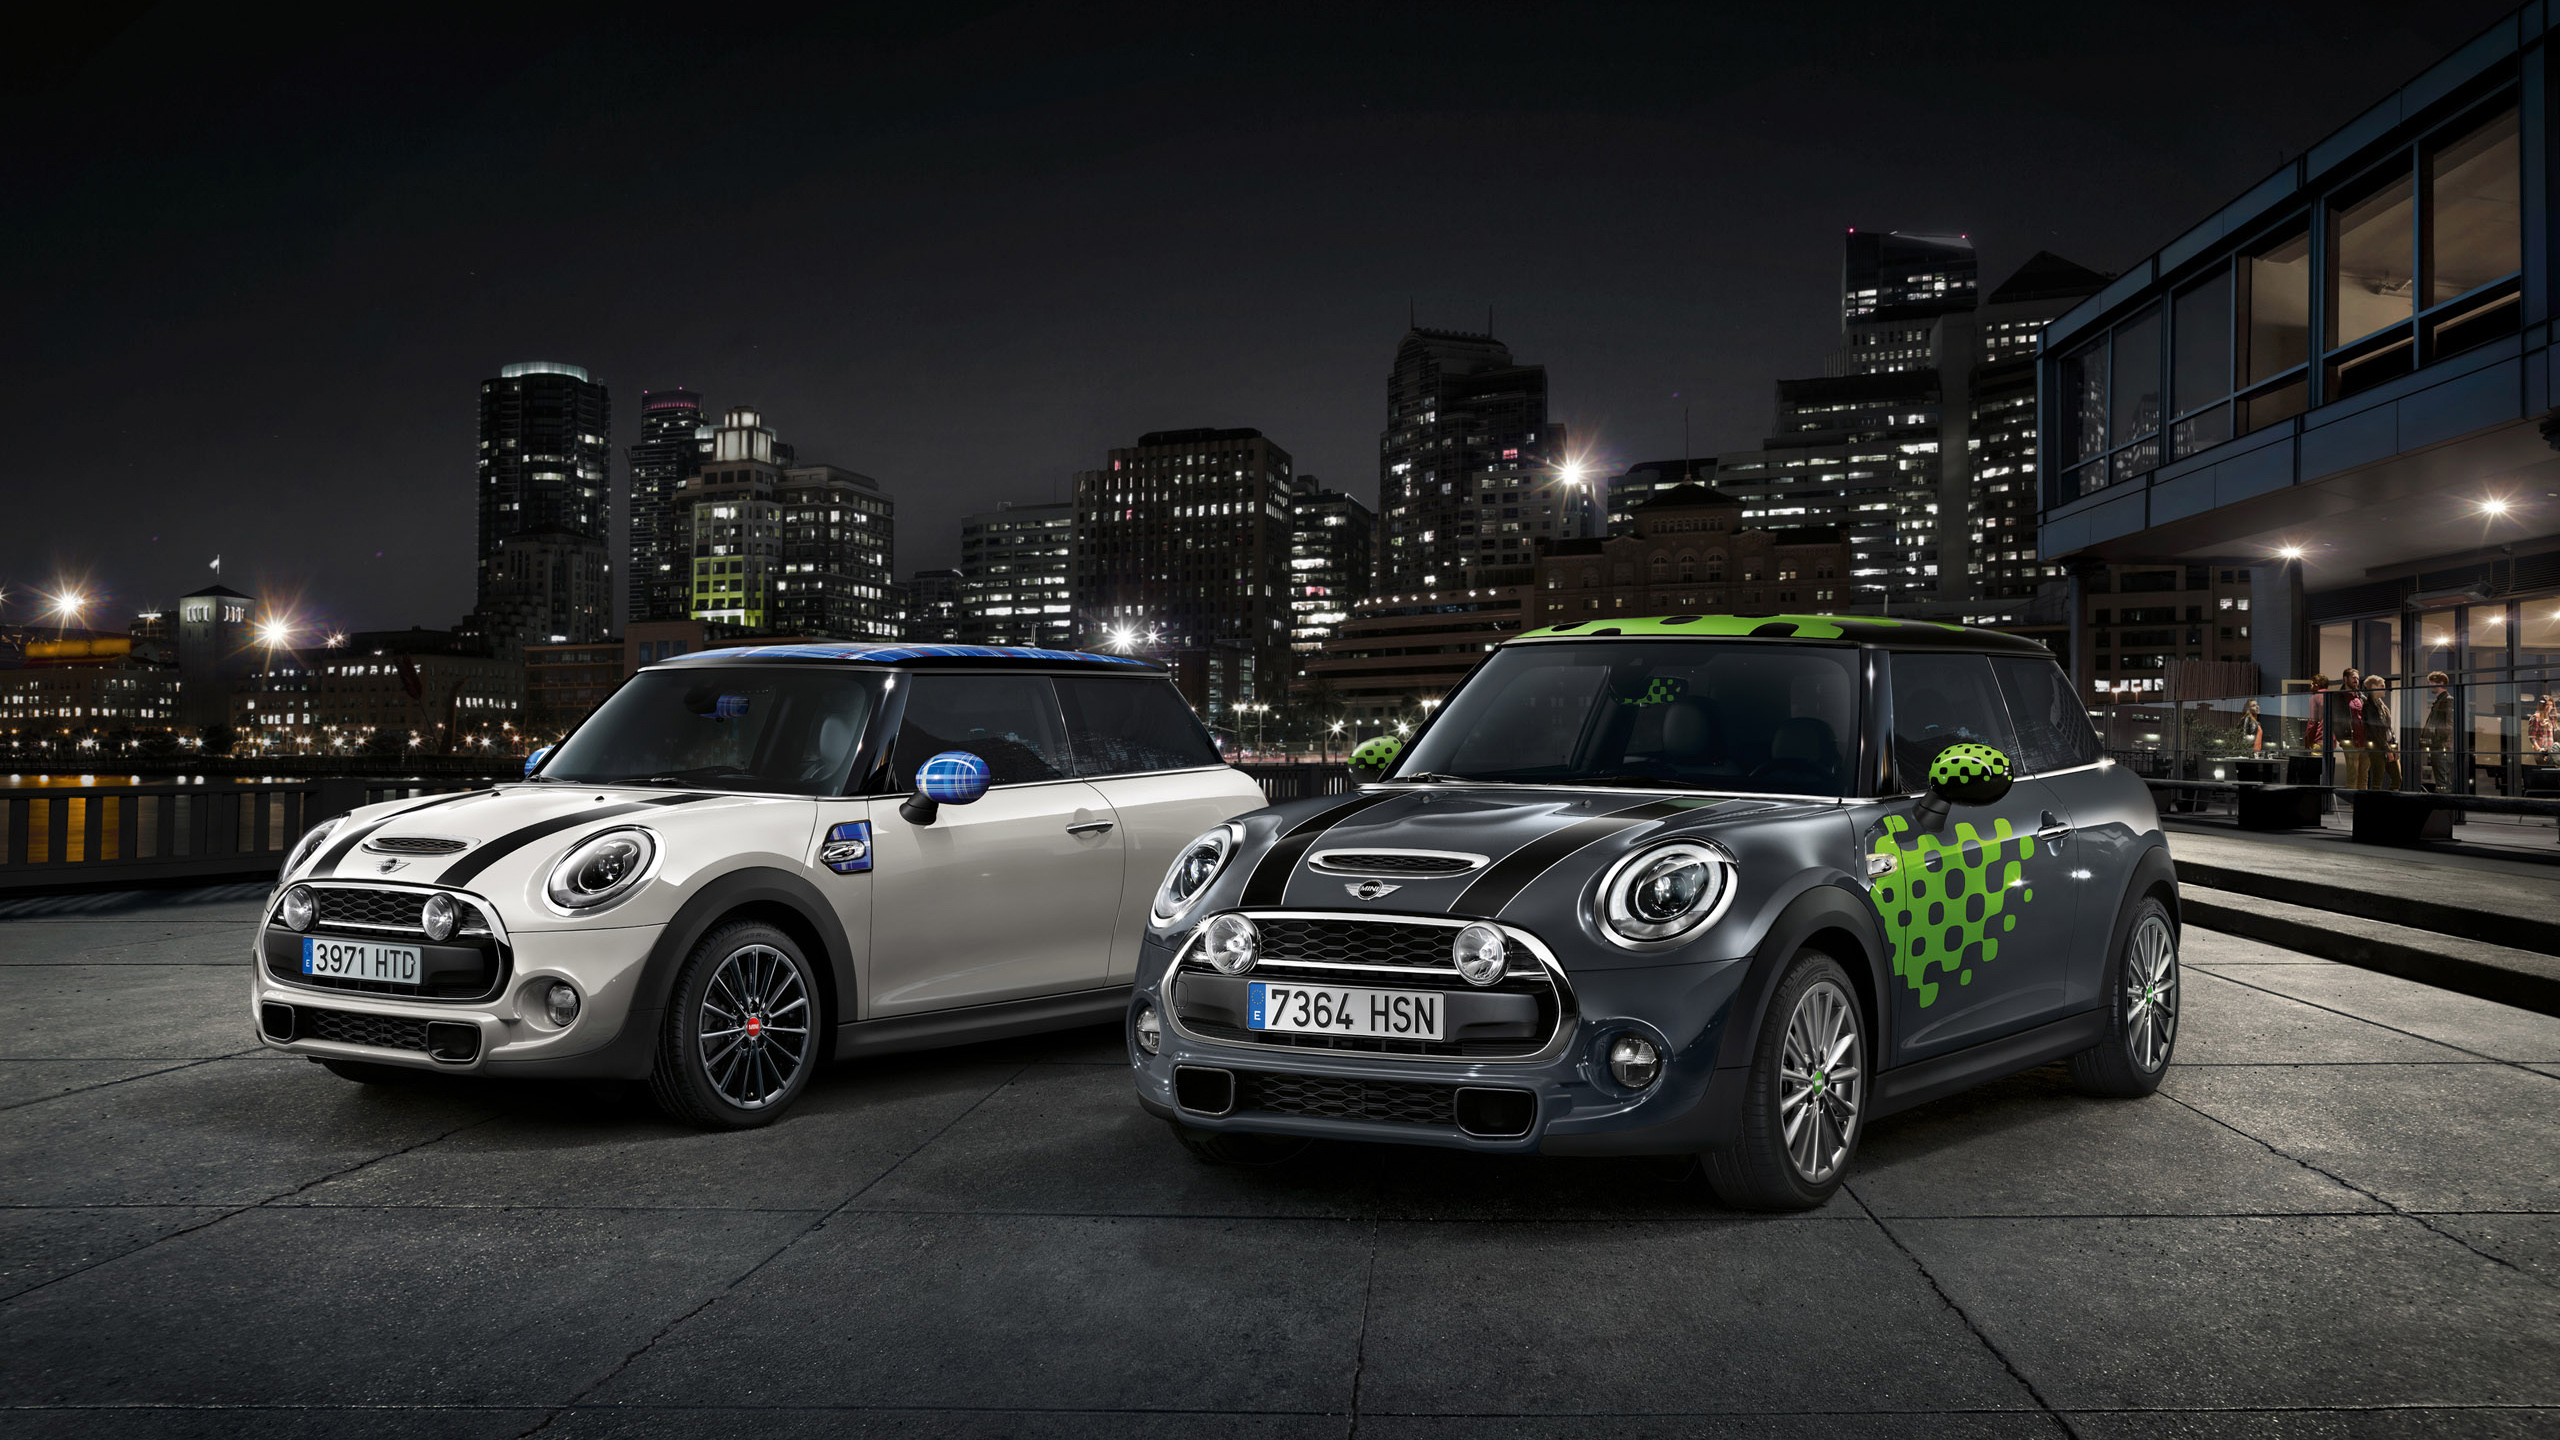 2014 MINI Cooper Accessories Wallpaper HD Car Wallpapers 2560x1440